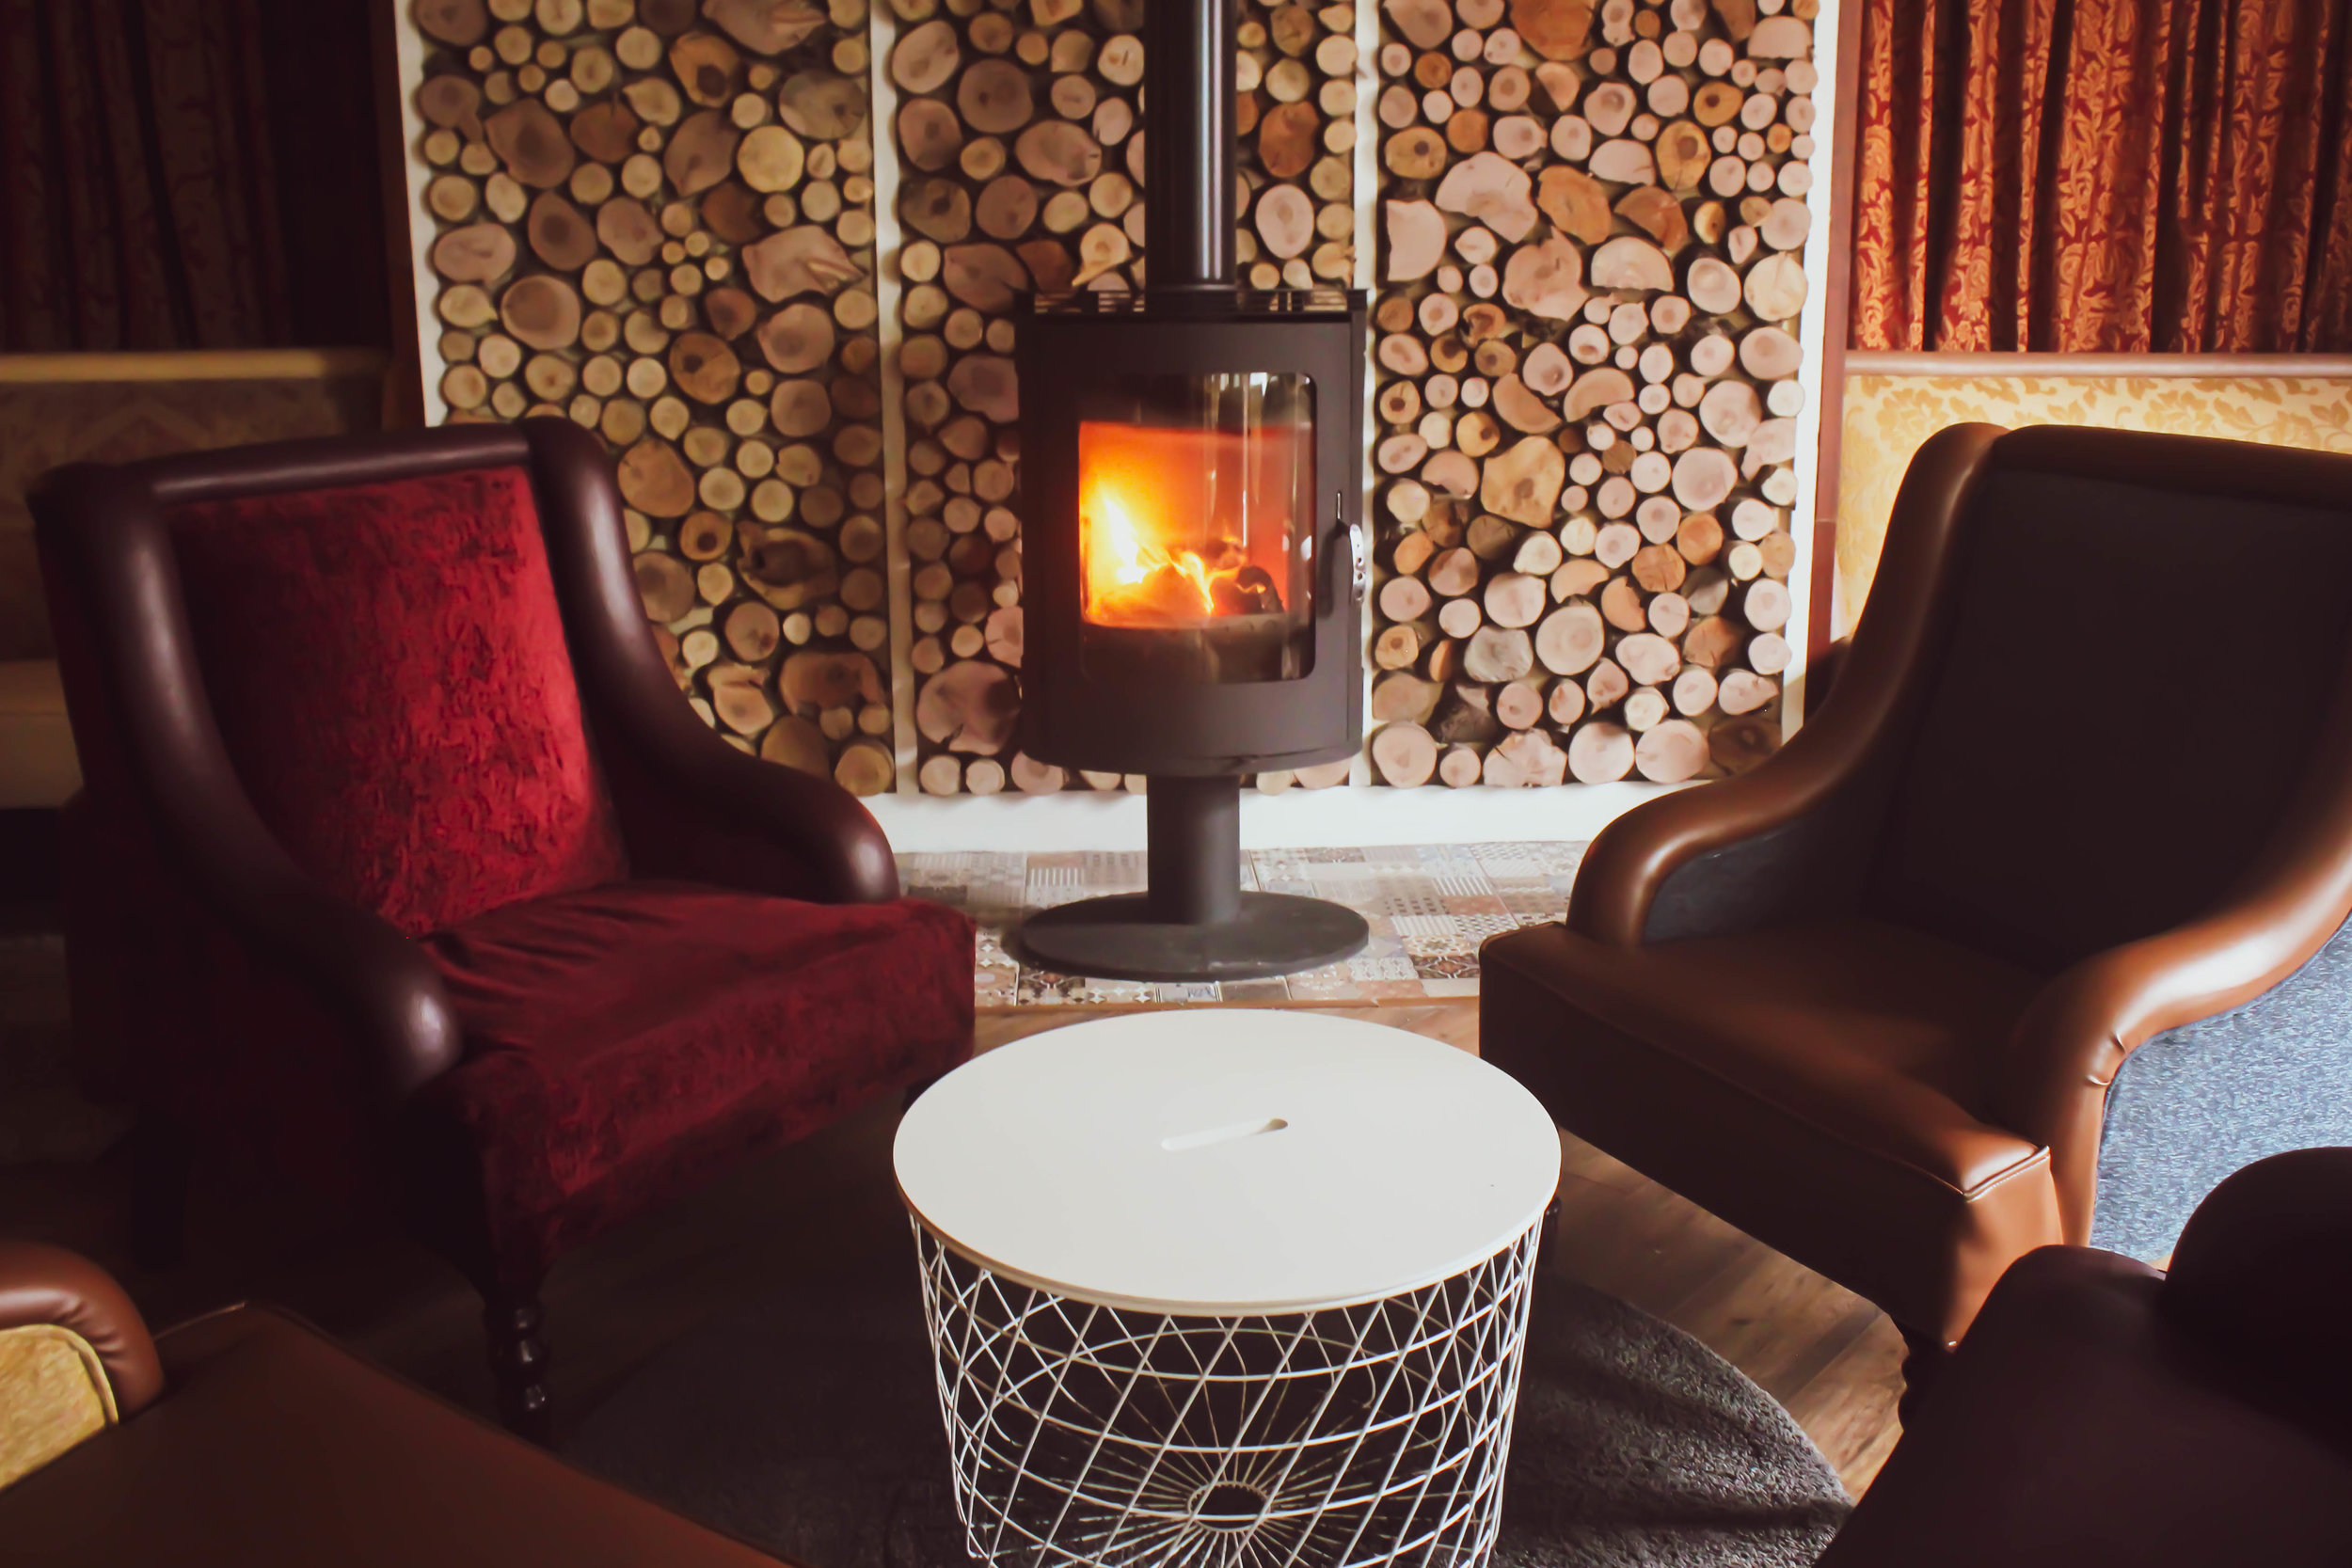 The Snug - The perfect area for warming up on a cold winters day. At night time when the main bar area is bustling, its the perfect spot to sit down and catch up with friends away from the crowds. The area is available to book for parties.